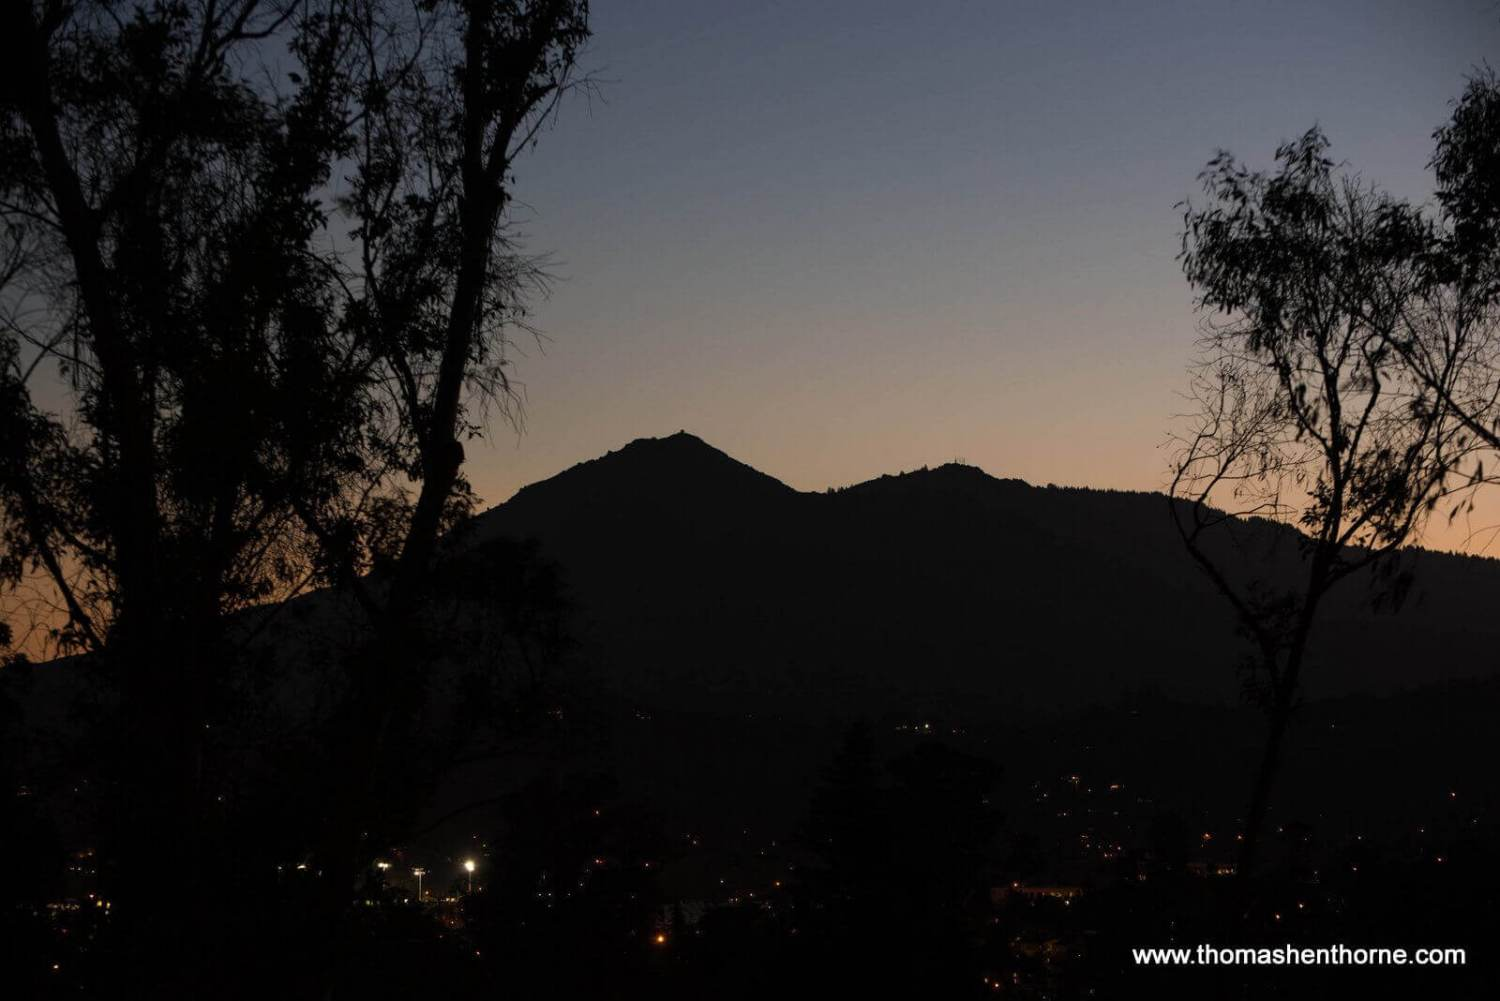 View of Mt. Tamalpais at Dusk